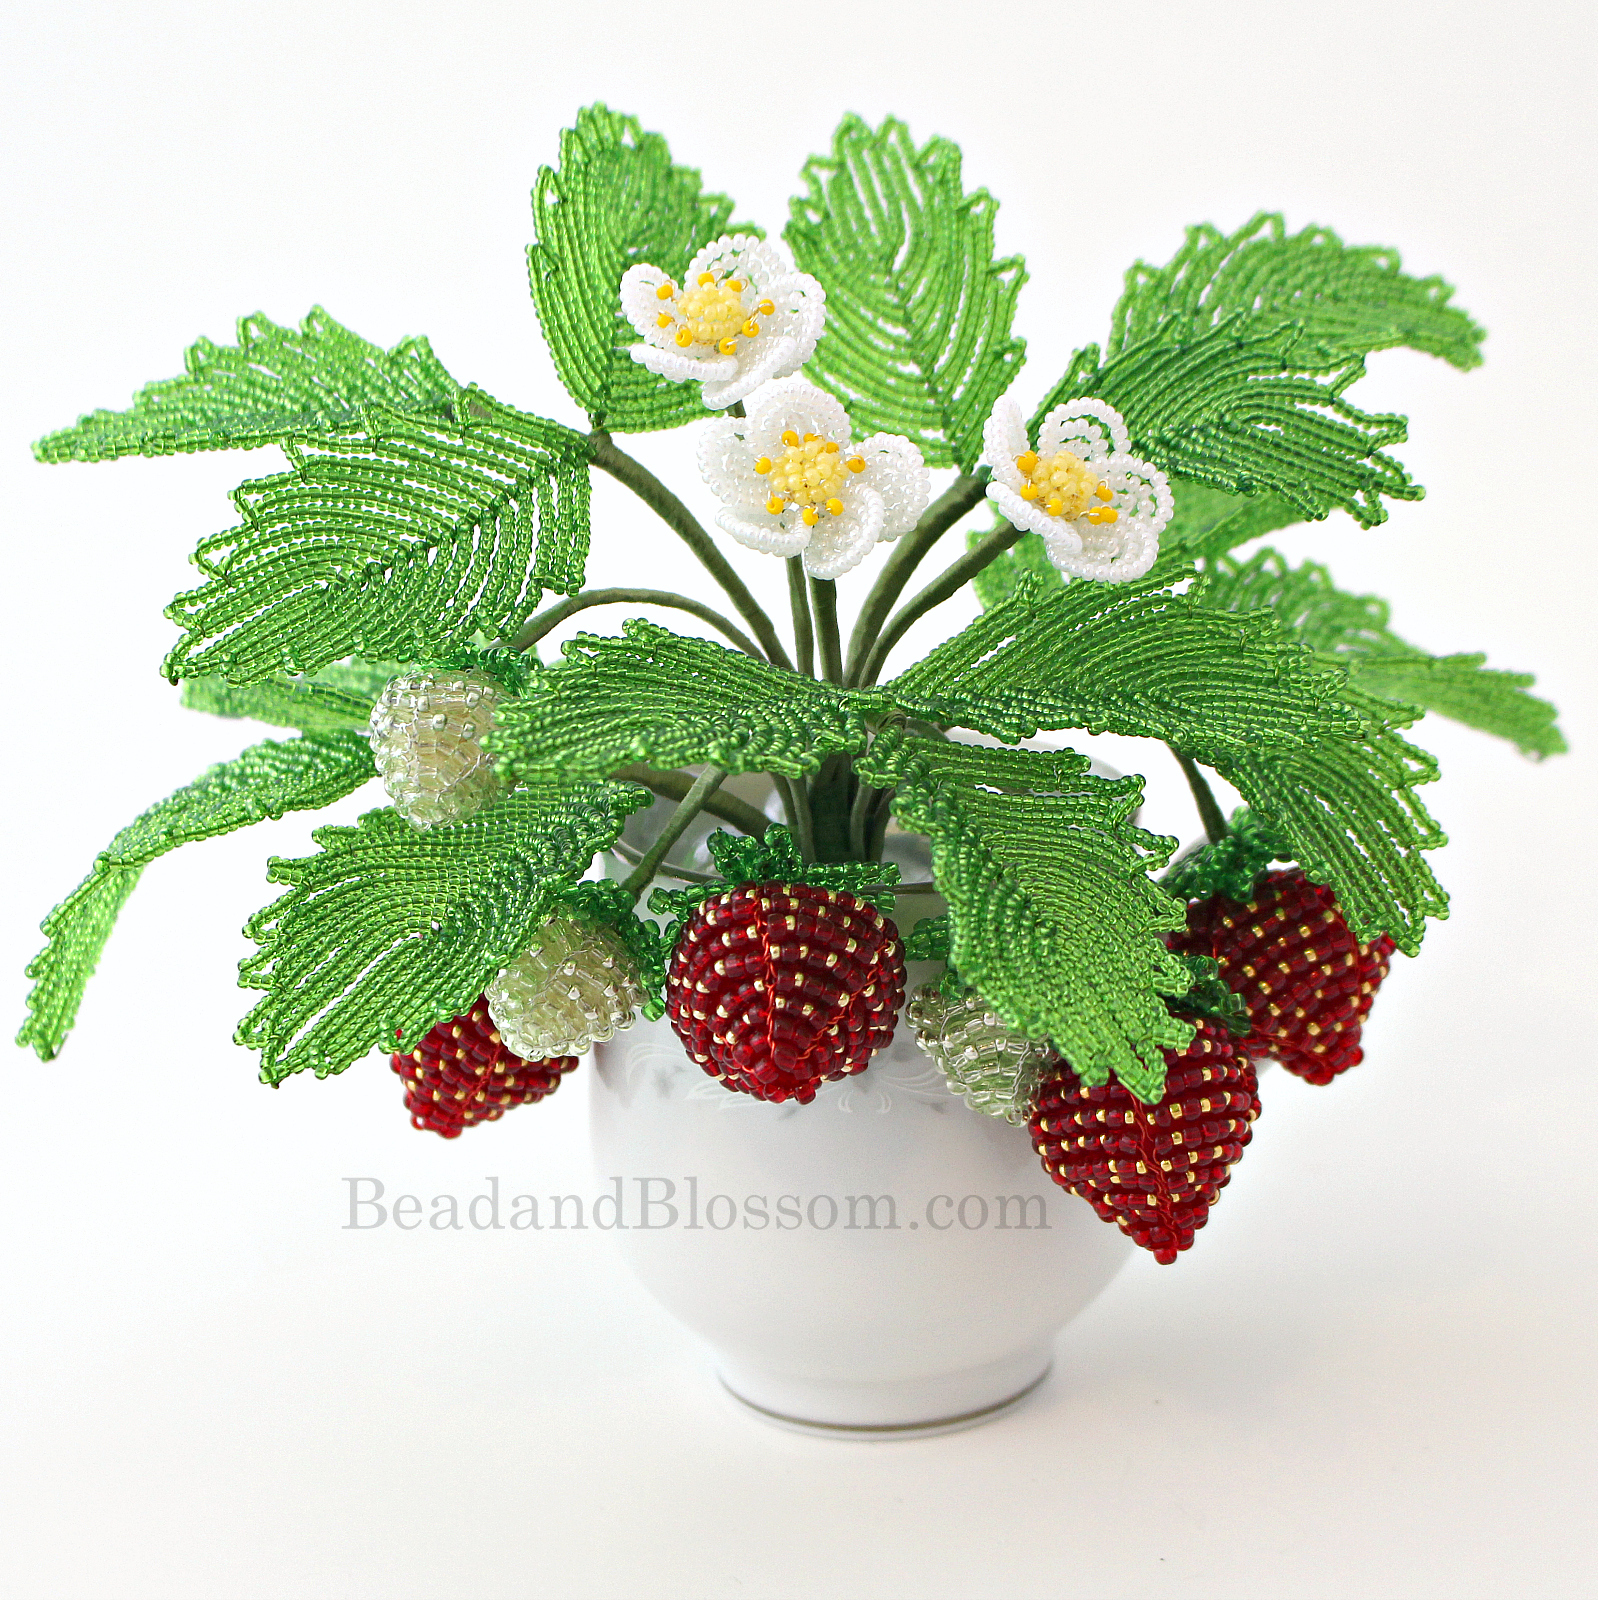 French Beaded Strawberry pattern by Lauren Harpster and Suzanne Steffenson